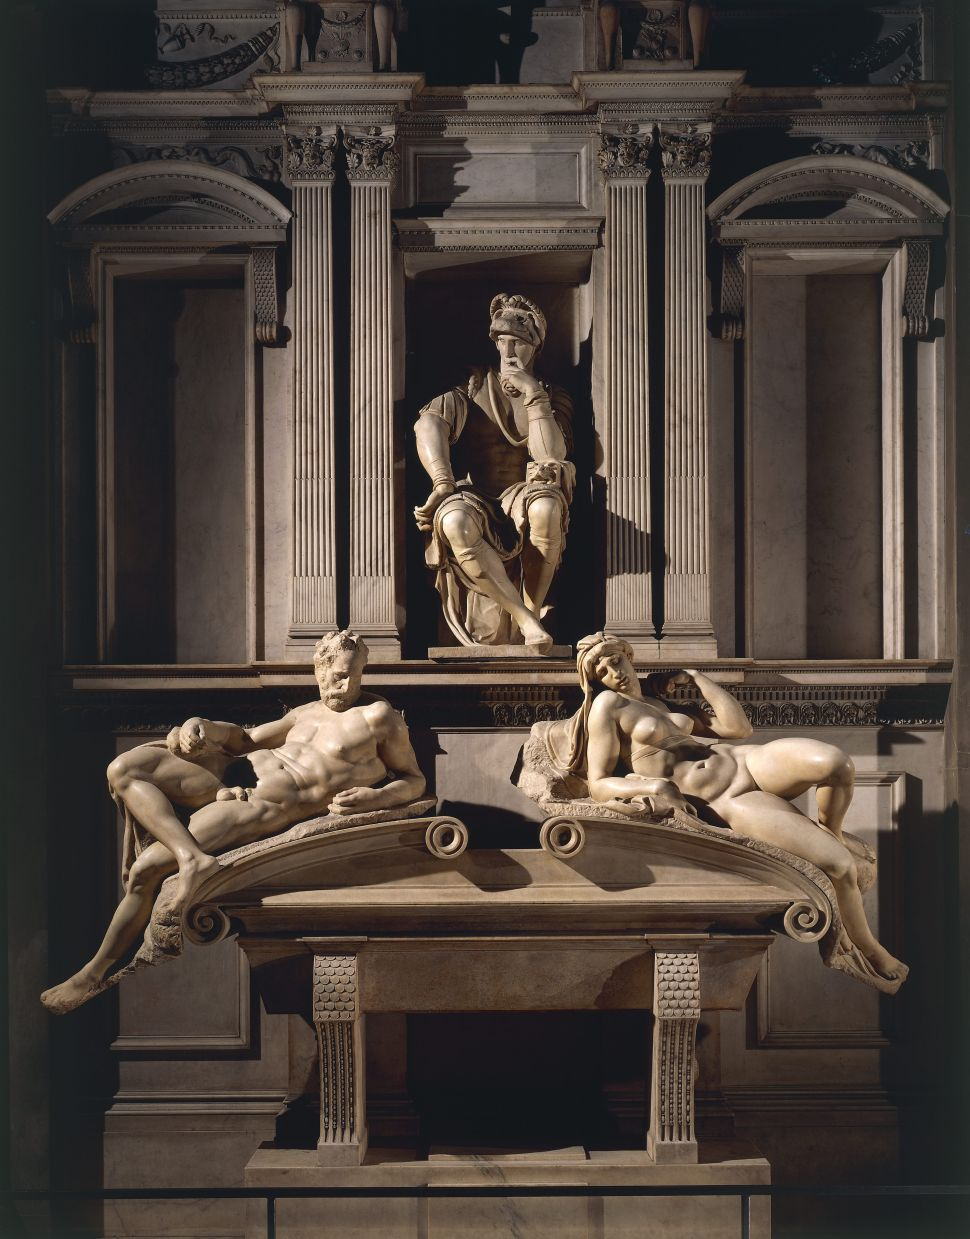 Michelangelo's Medici Chapel Sculptures Were Cleaned with Bacteria During COVID-19